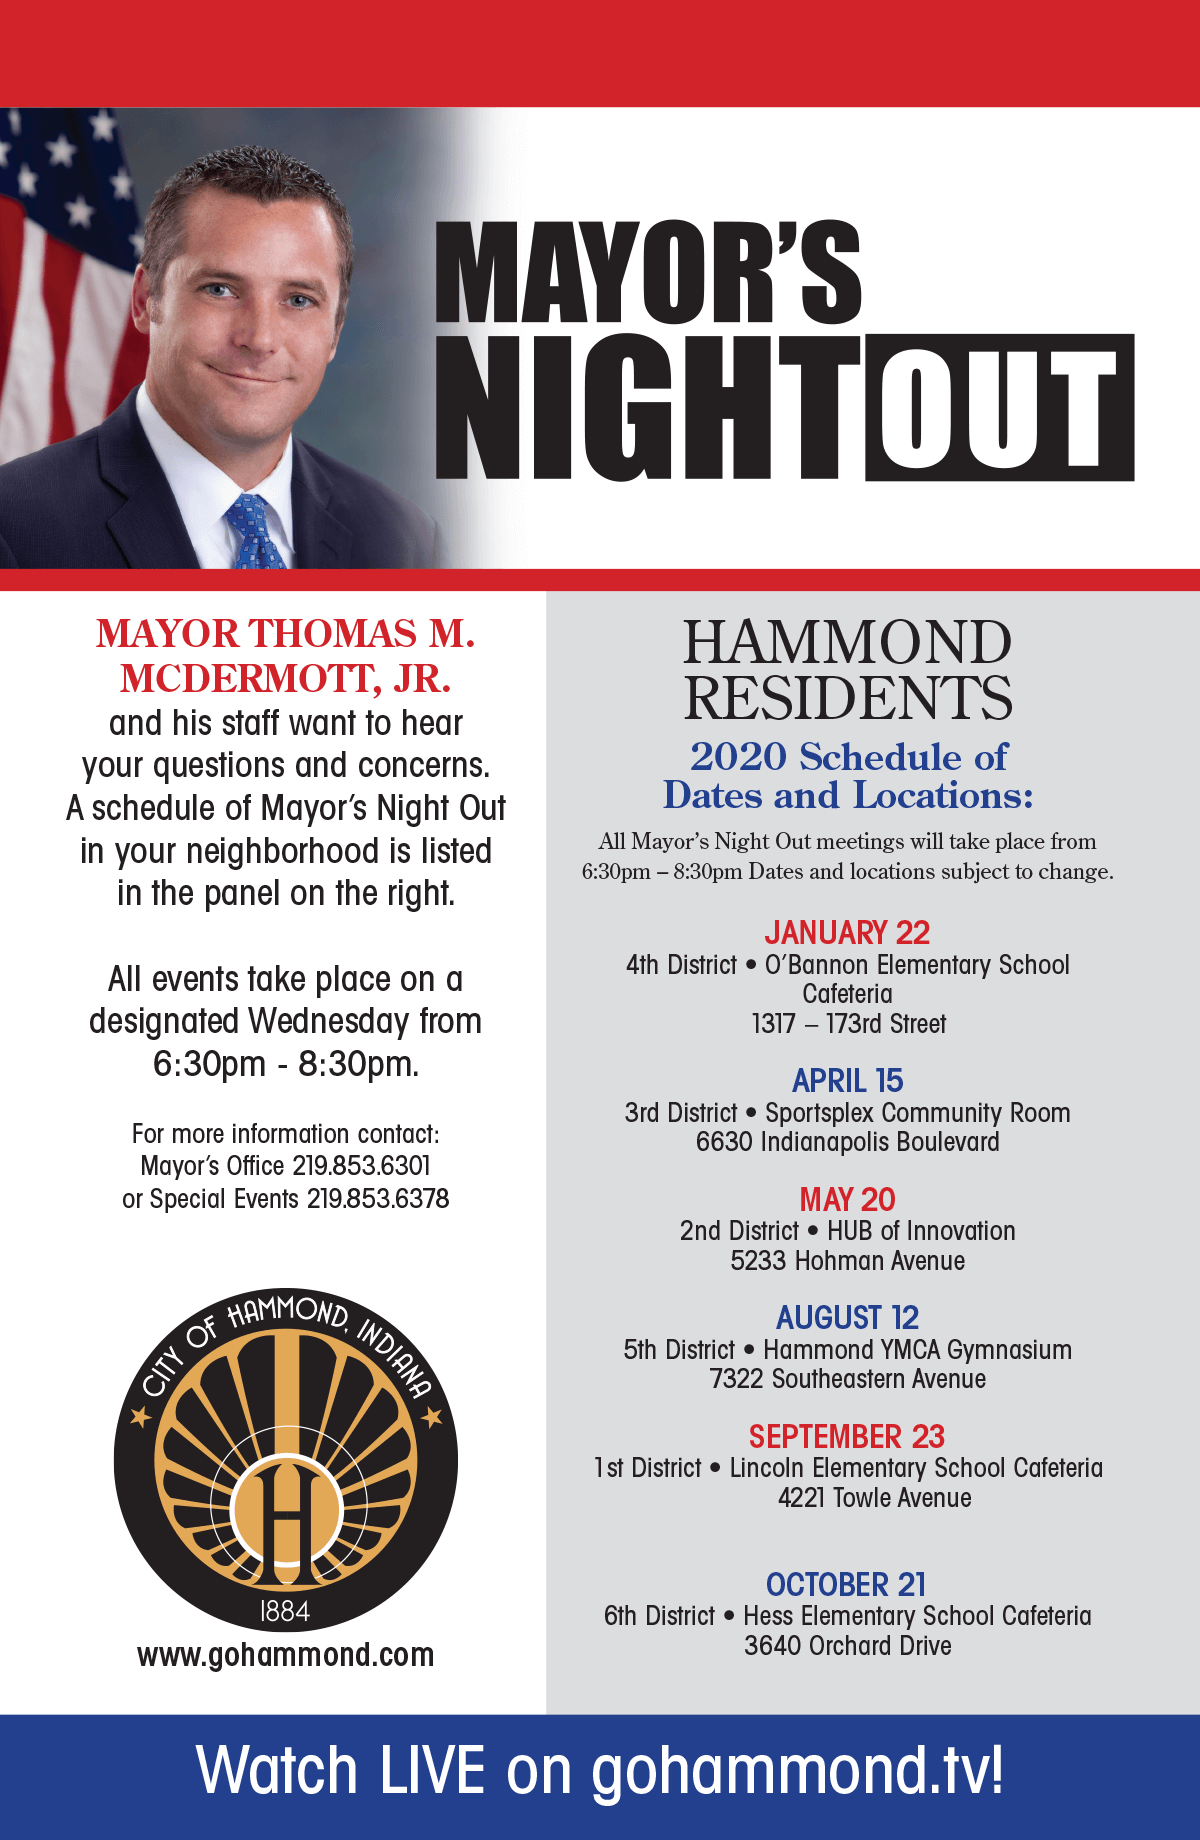 2019 Mayor's Night Out Schedule